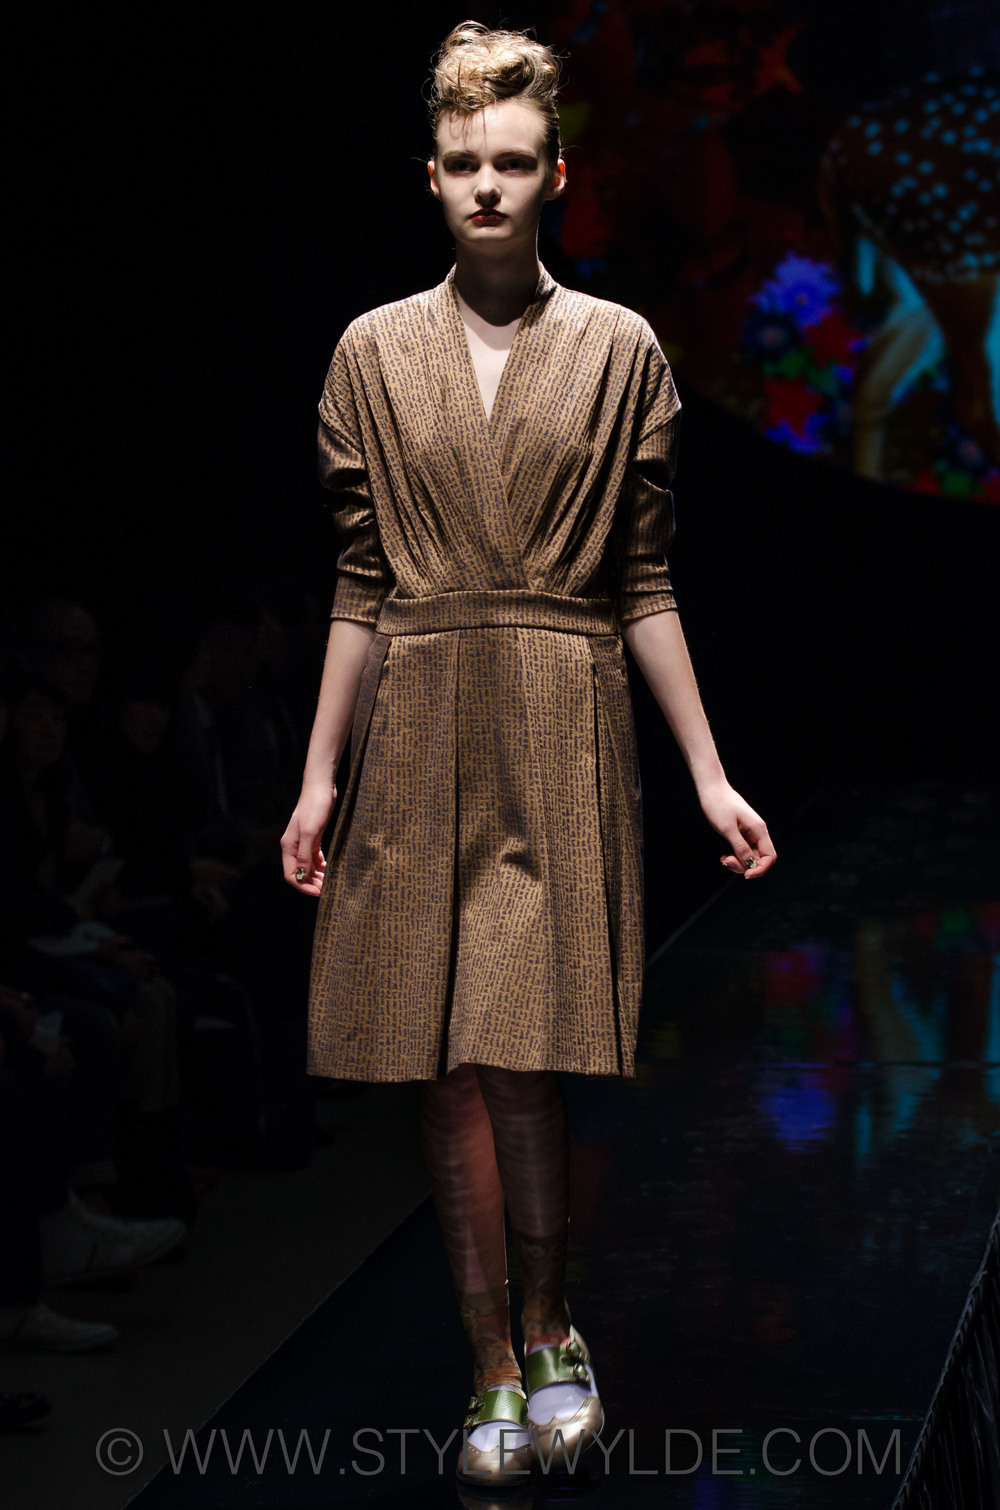 StyleWylde_INProcess_AW14_edited (1 of 1)-11.jpg